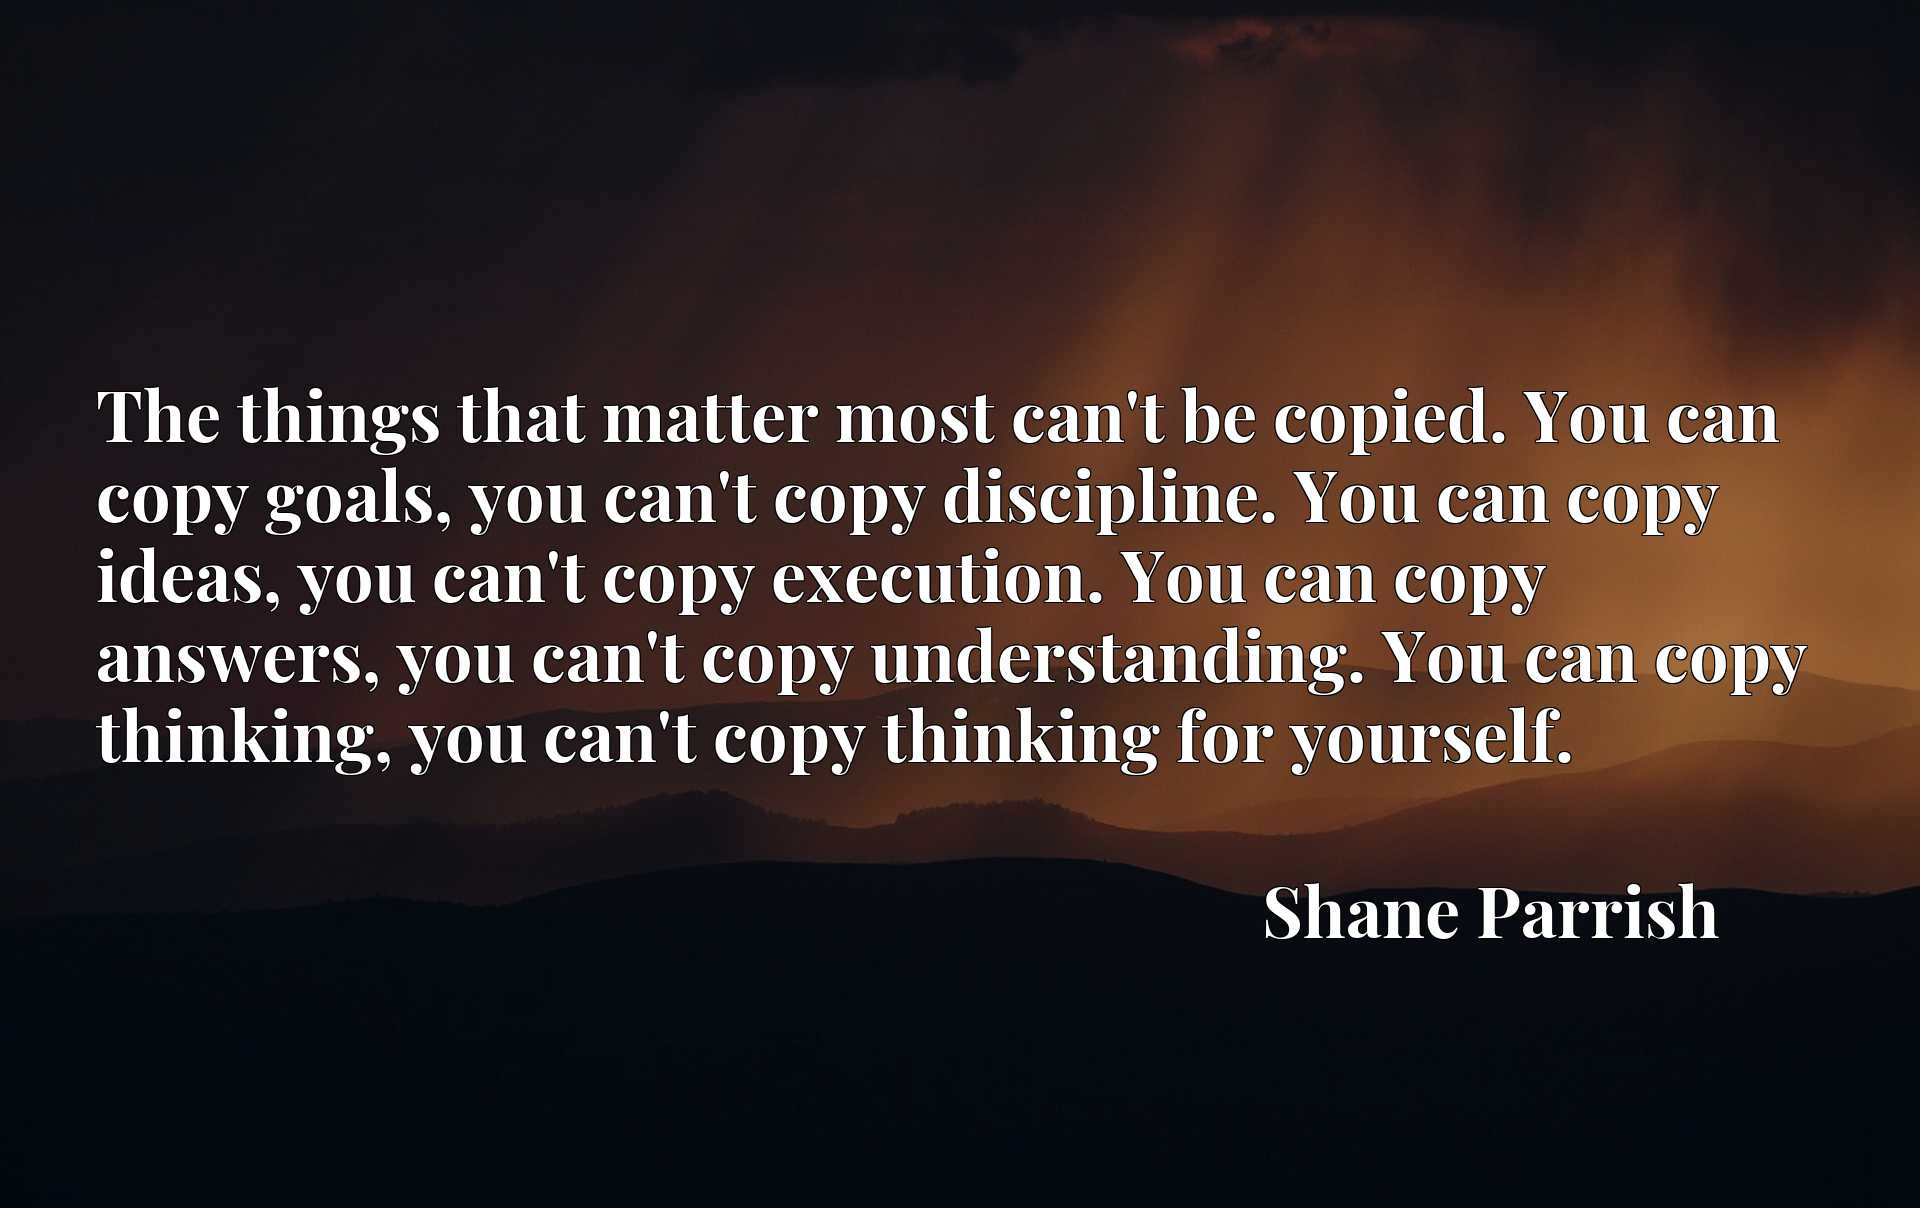 The things that matter most can't be copied. You can copy goals, you can't copy discipline. You can copy ideas, you can't copy execution. You can copy answers, you can't copy understanding. You can copy thinking, you can't copy thinking for yourself.